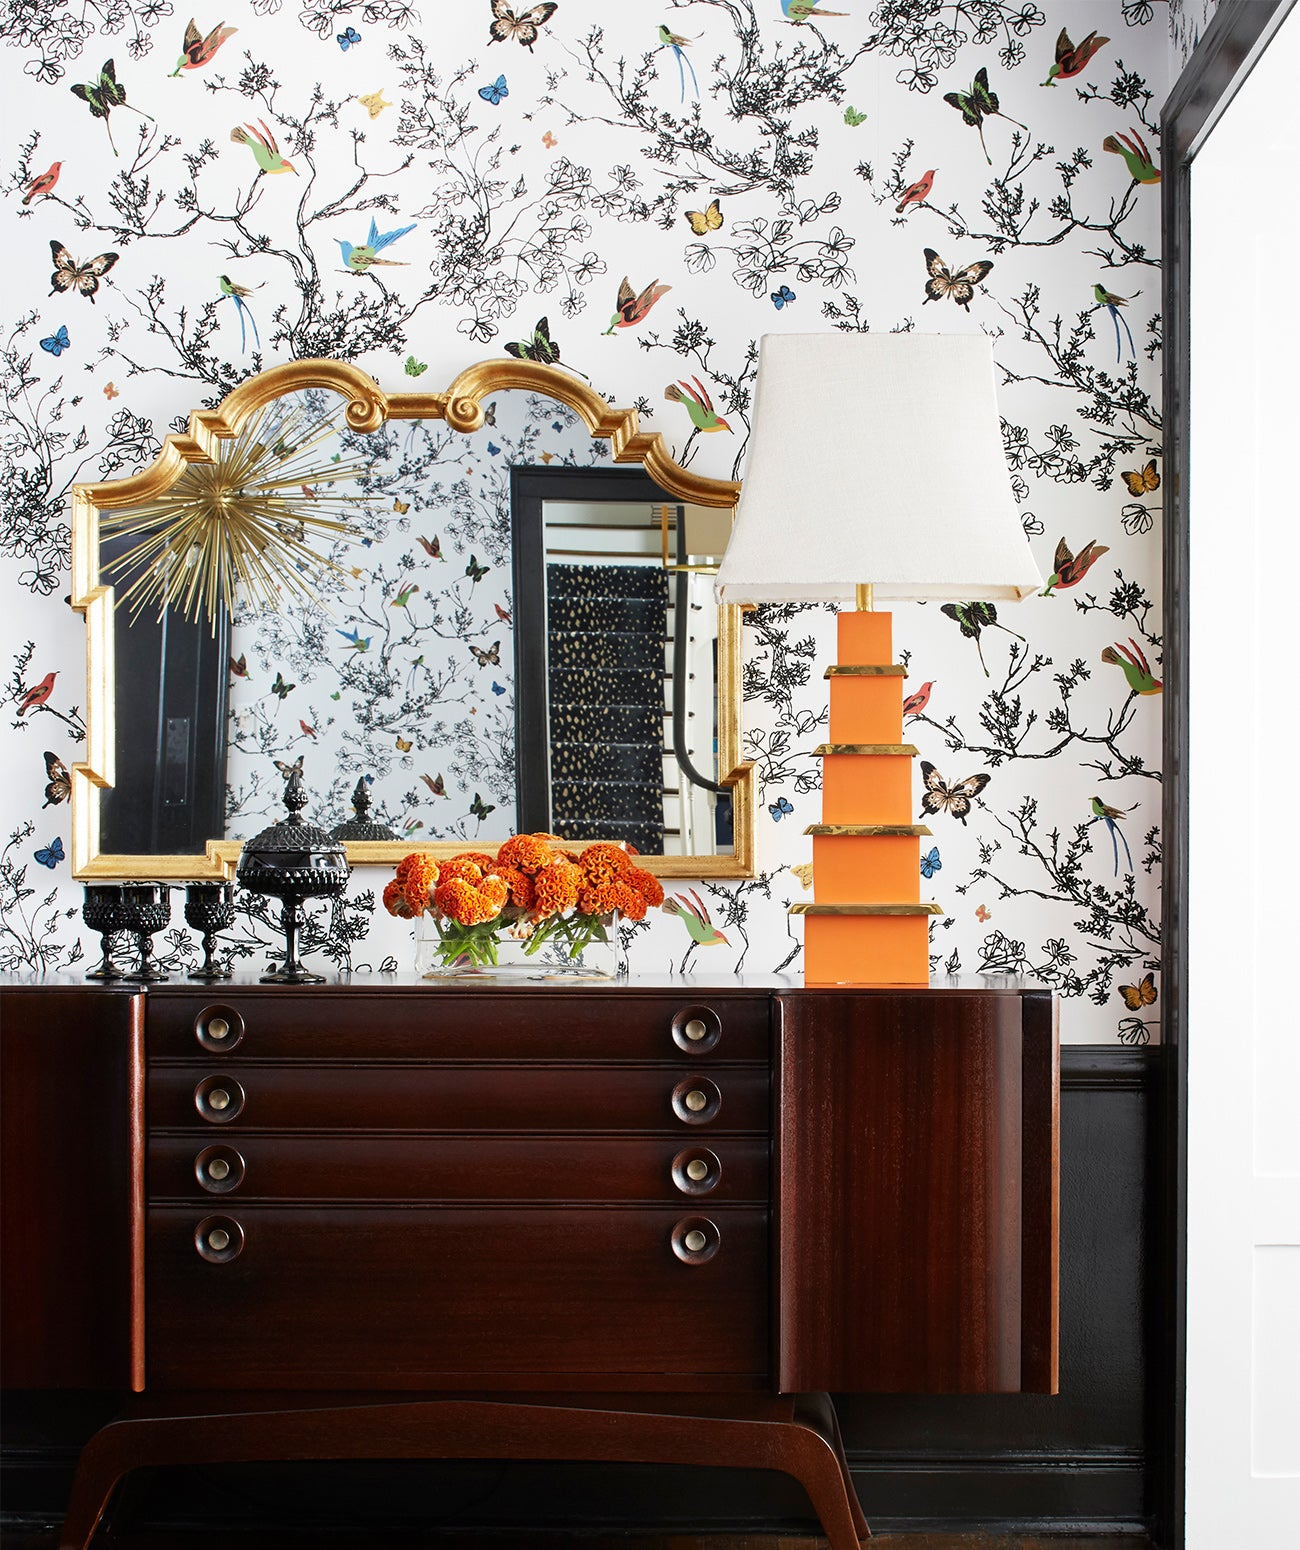 A floral-wallpapered nook featuring a credenza and table lamp/Photography: Amy Kartheiser Design/Playful yet chic wallpaper unites this design moment in one of Amy Kartheiser's recent projects.